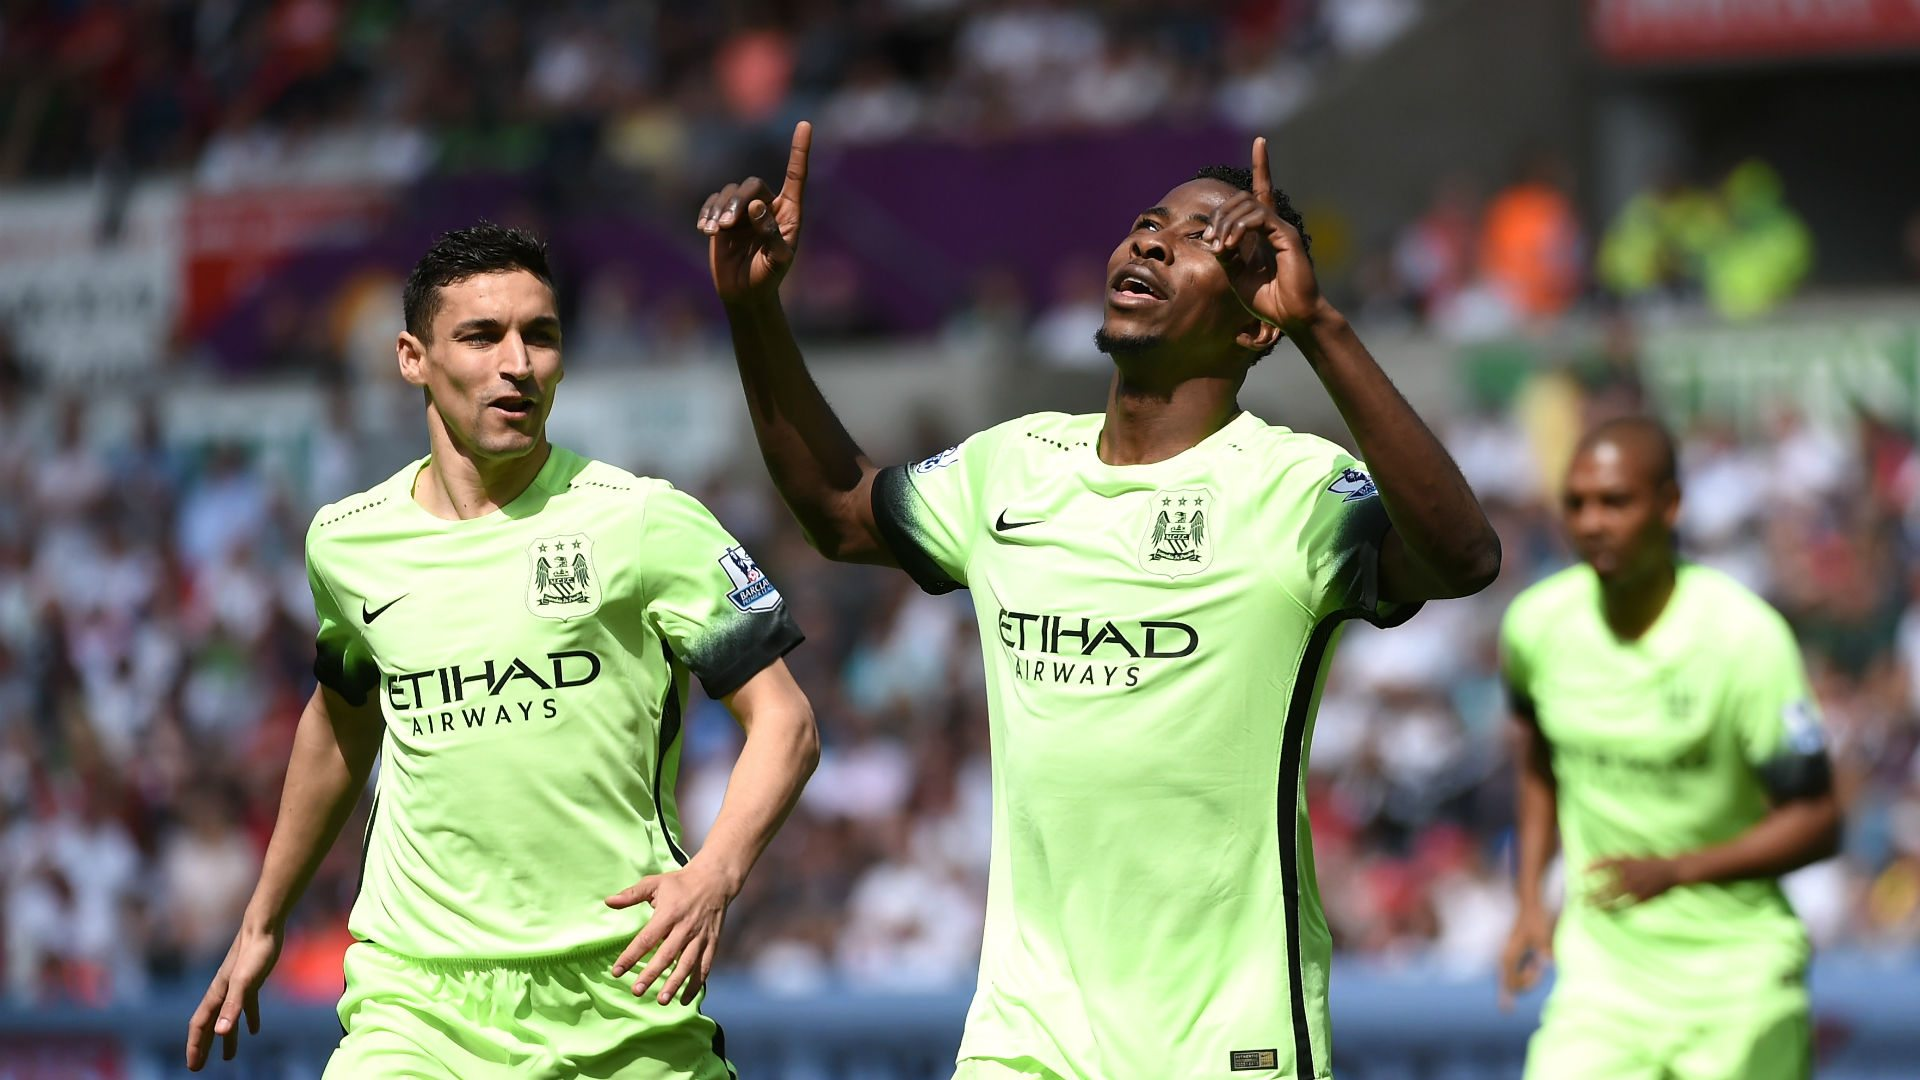 Kelechi Iheanacho, Celebrating His Goal With Manchester City Team-mate, Jesus Navas